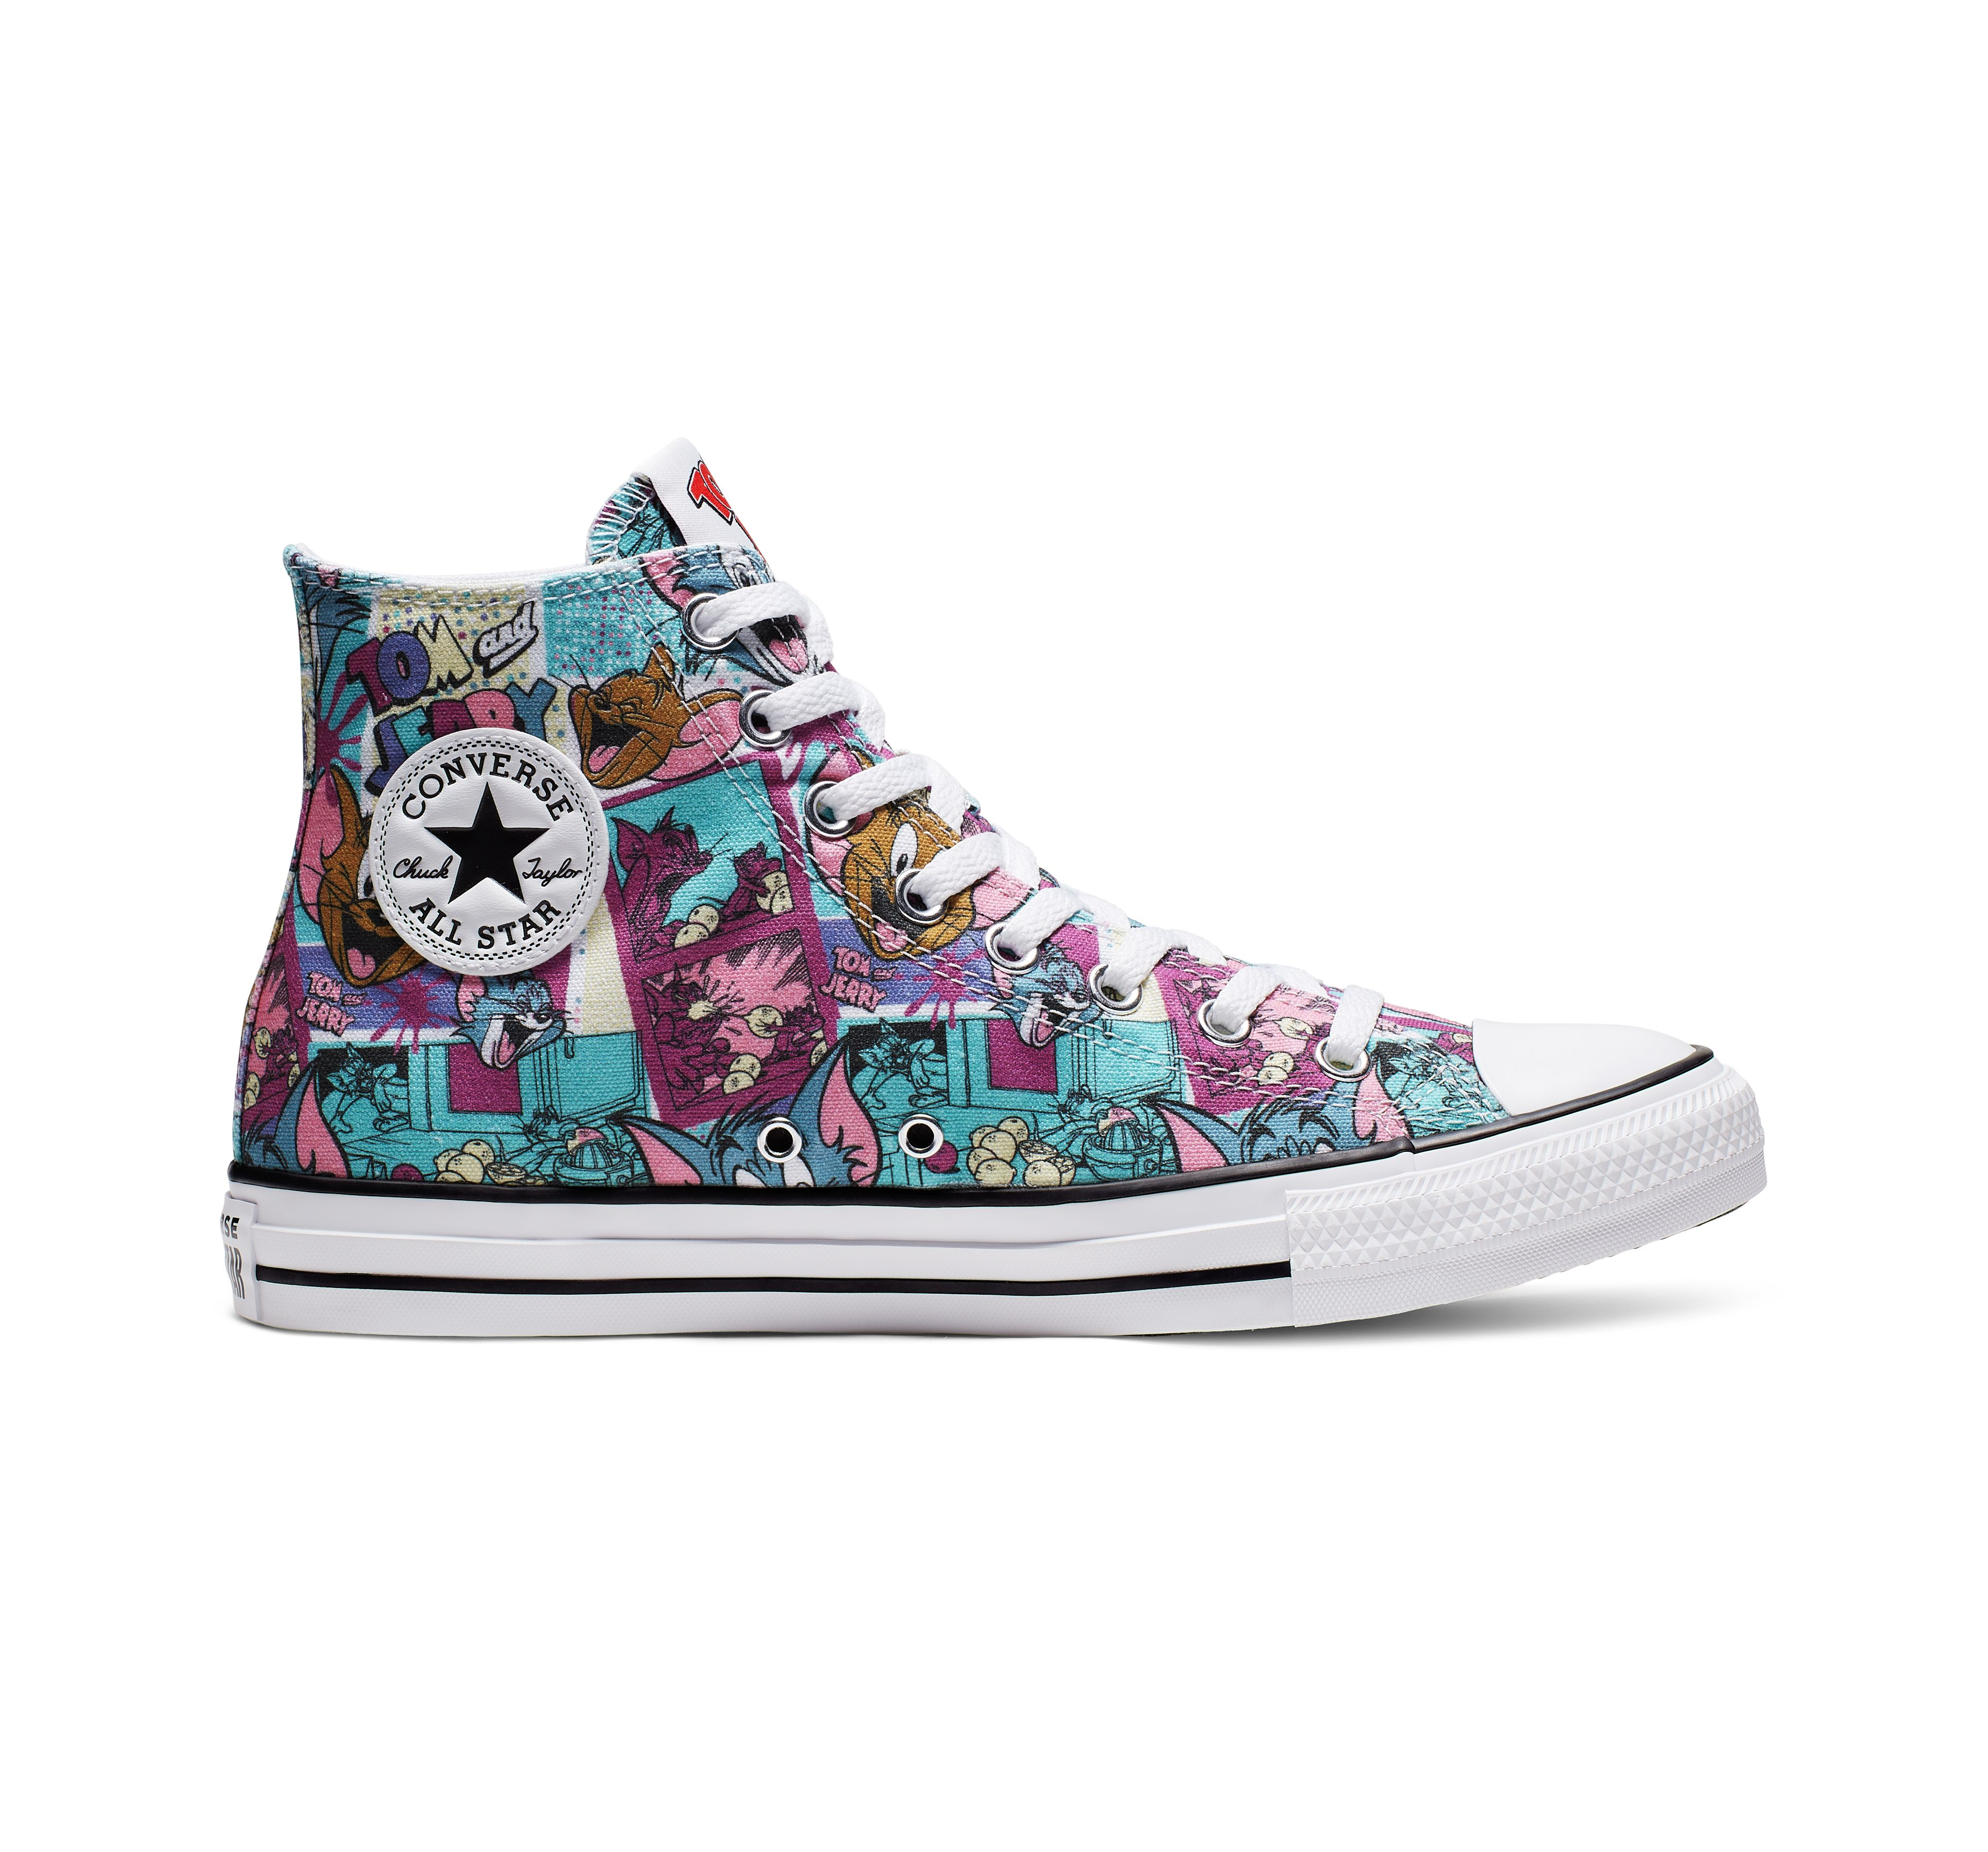 Tom and Jerry Chuck Taylor All Star High Top | Sneakers for